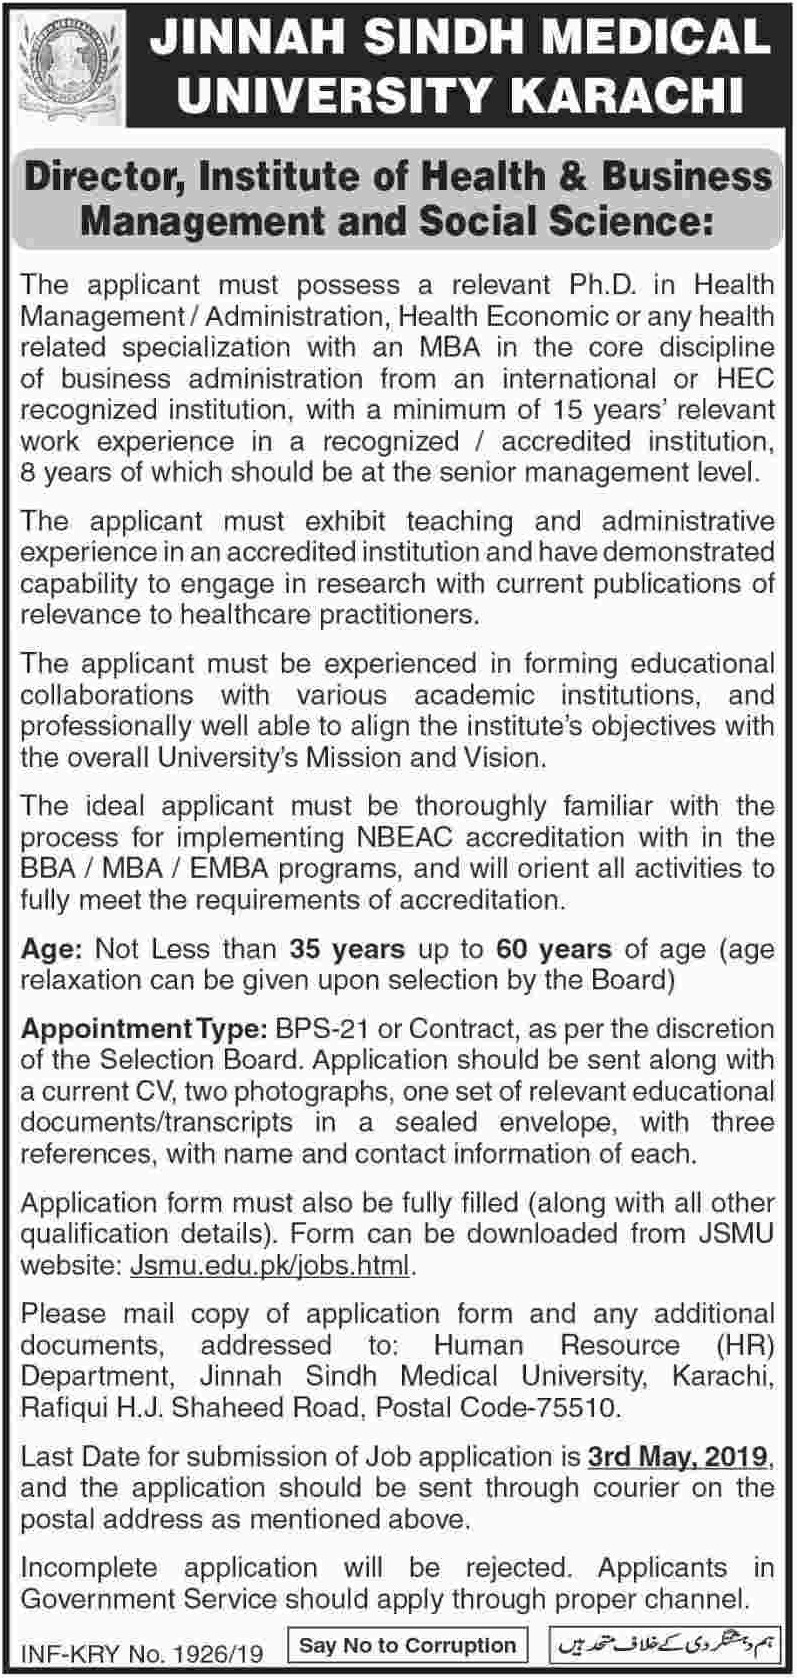 Jinnah Sindh Medical University JSMU Karachi Jobs 2019 Director Latest